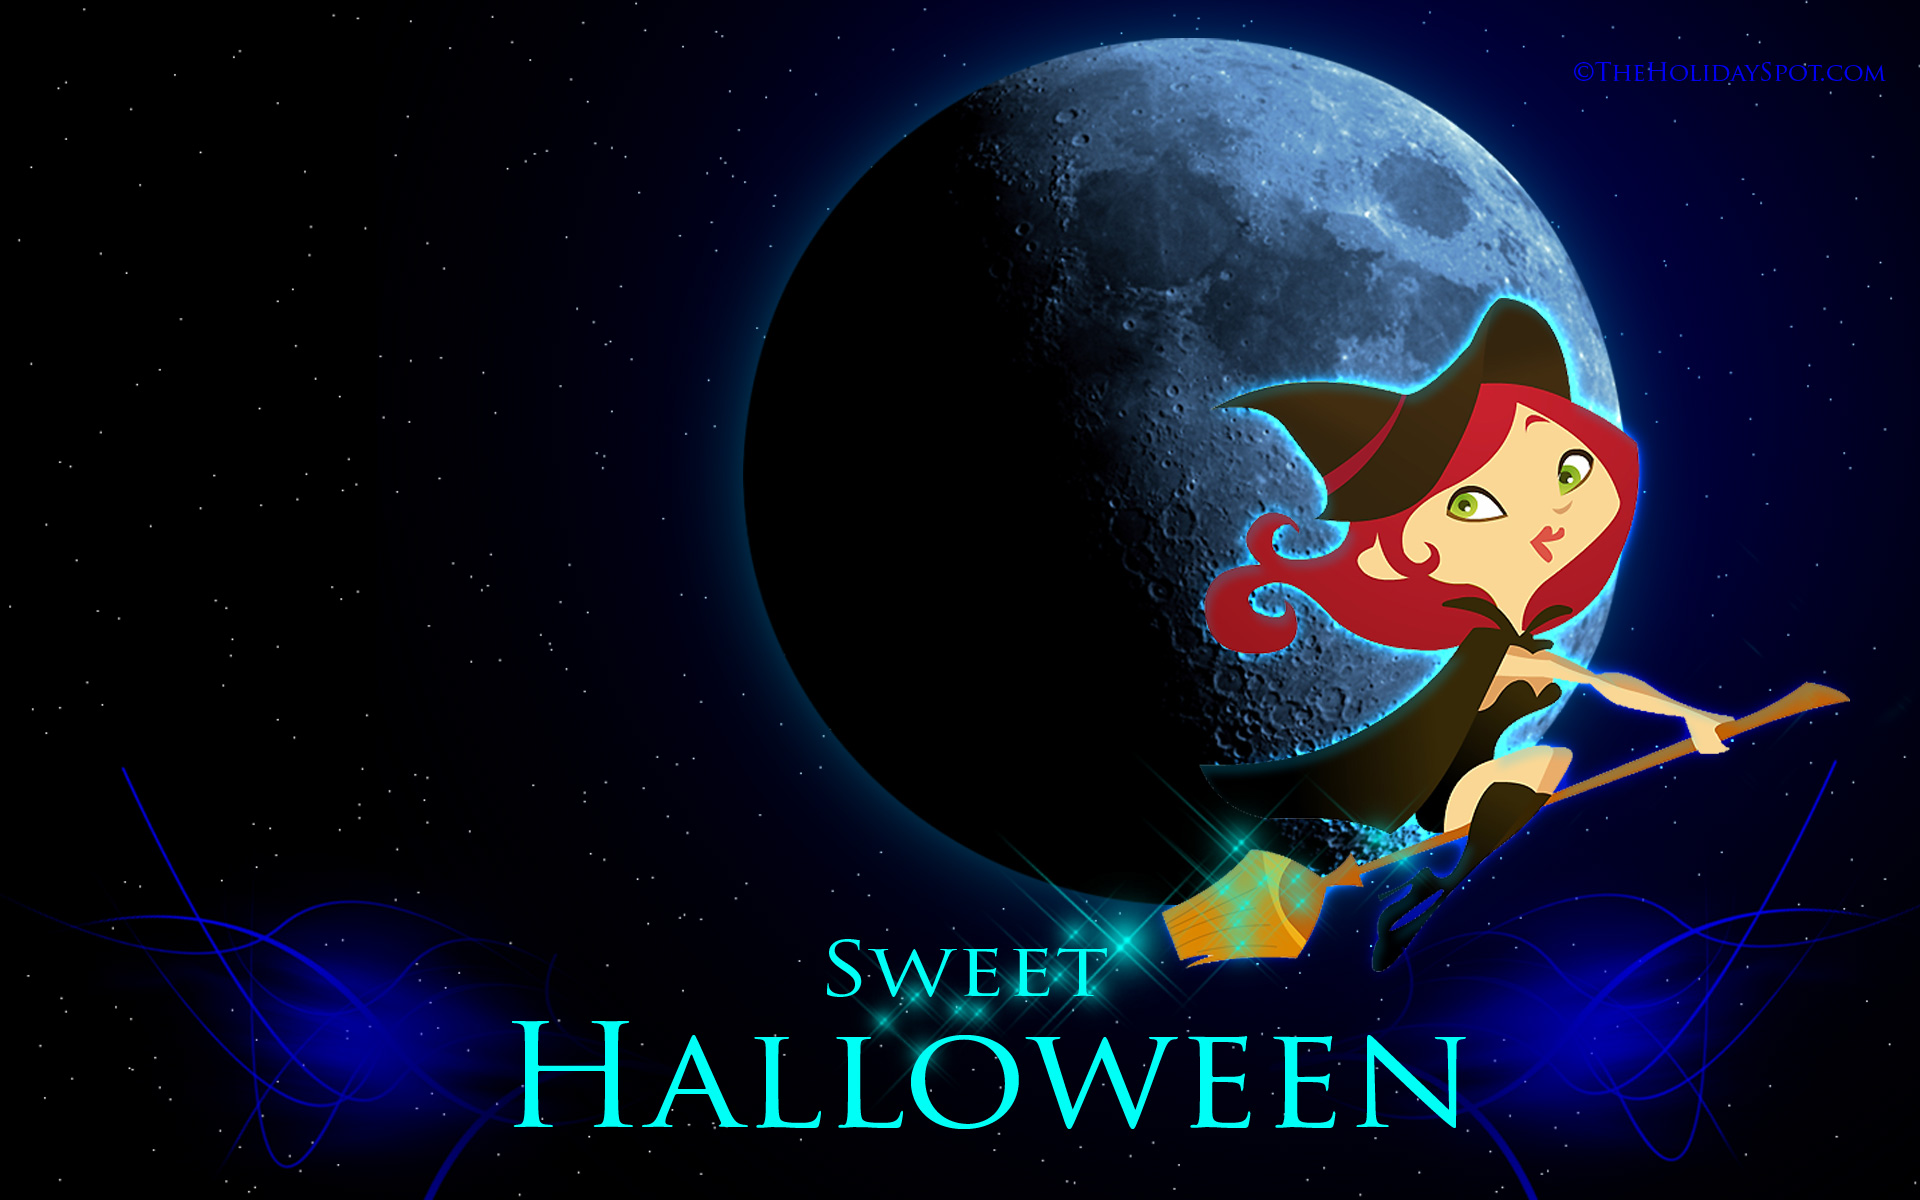 ... 1920 X 1200, 1440 X 900. 70 Beautiful Halloween Wallpapers ...